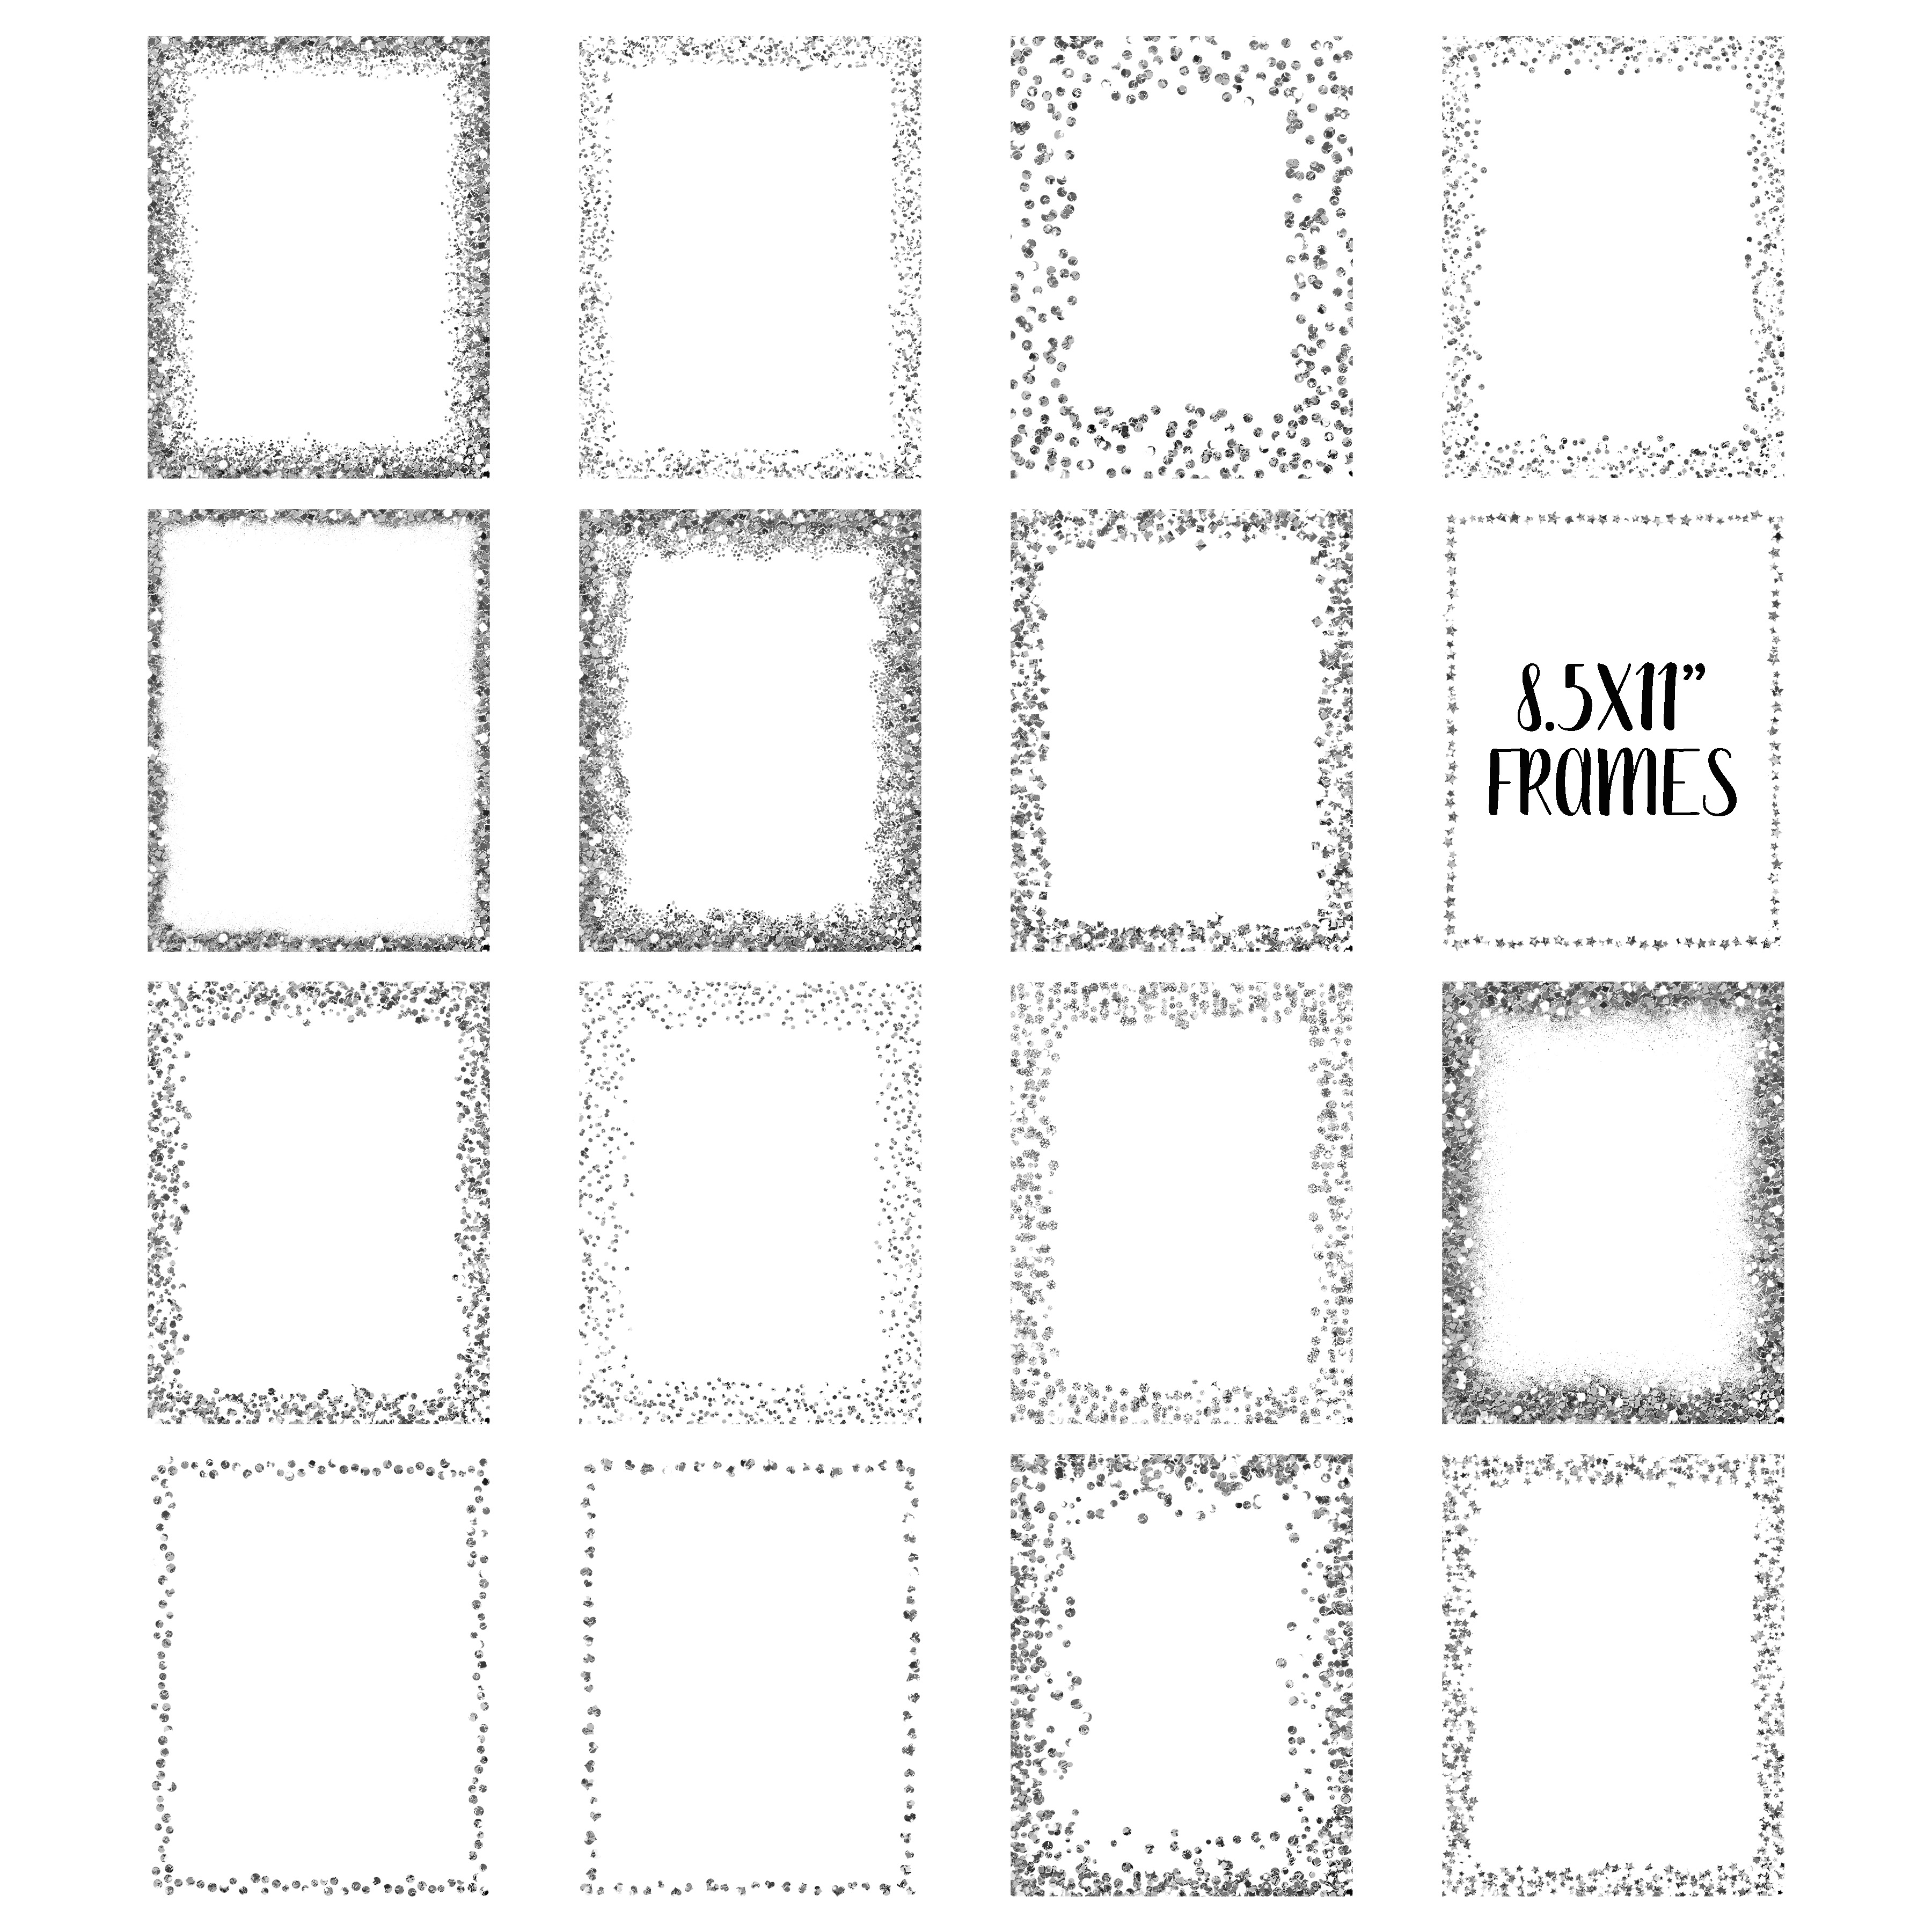 Silver glitter frame clipart image black and white download Silver Glitter Frames and Borders PNG Clipart Bundle image black and white download